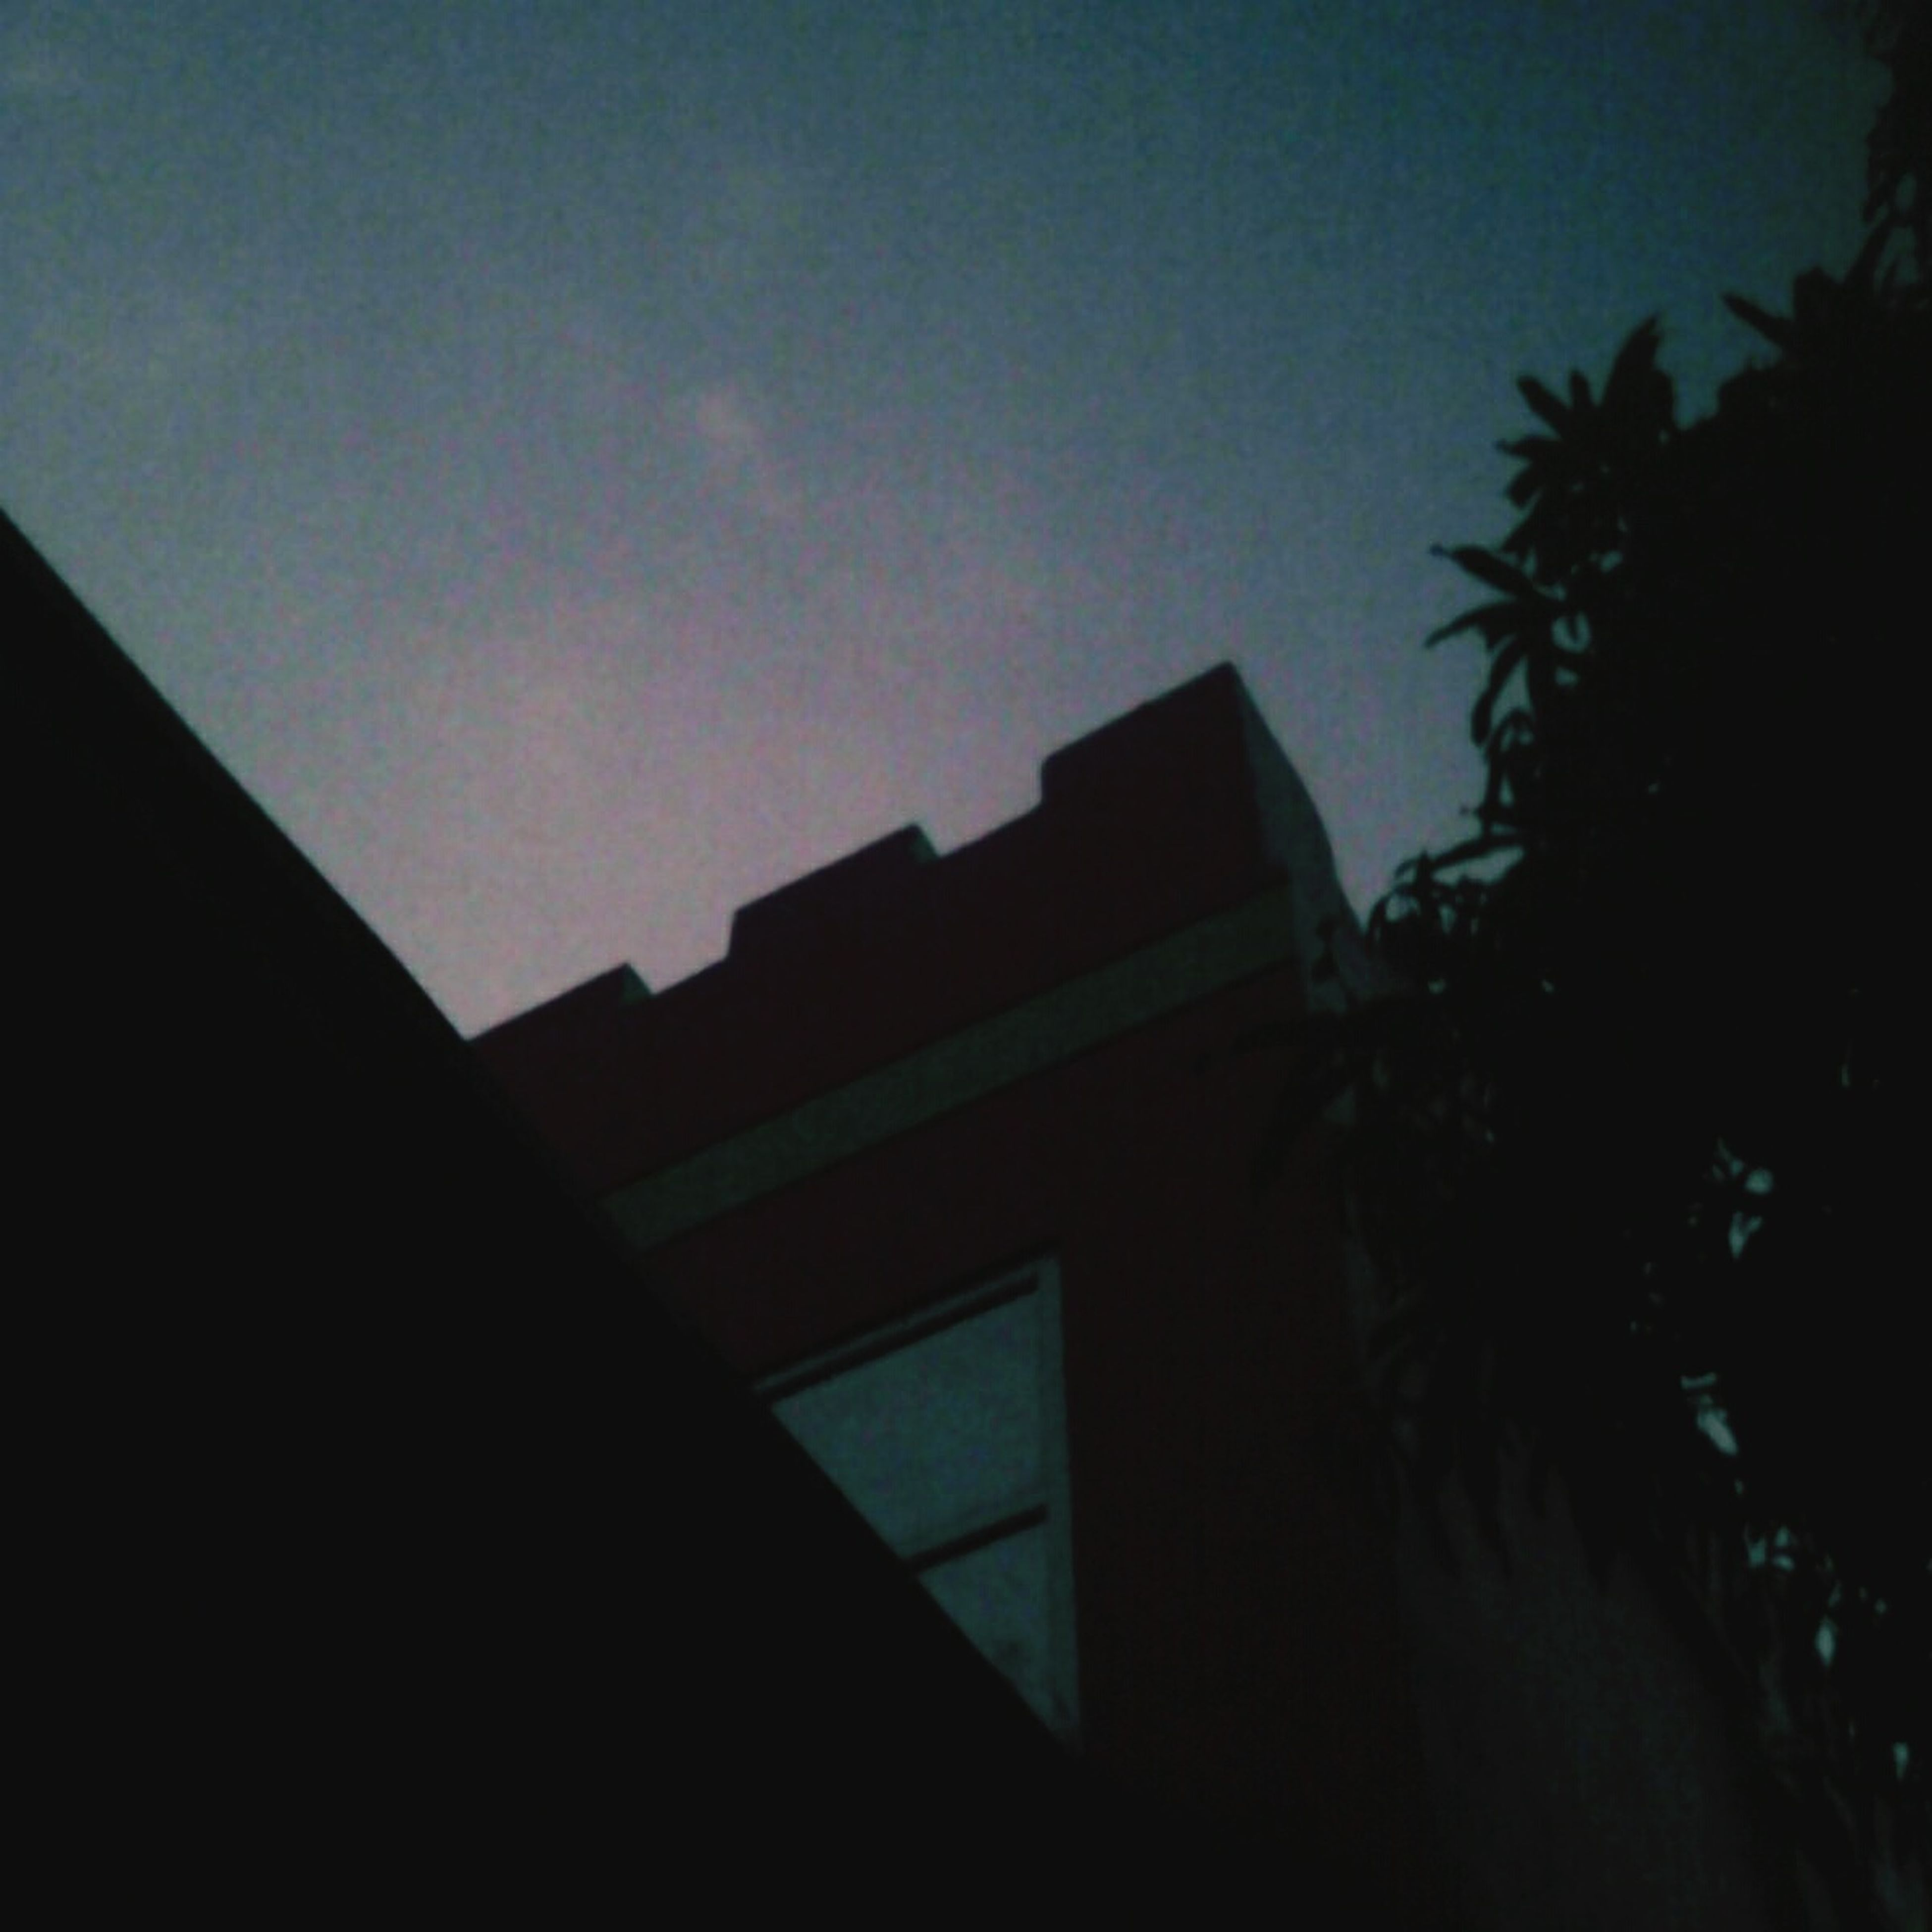 architecture, building exterior, built structure, low angle view, clear sky, residential structure, residential building, house, window, sky, tree, building, silhouette, copy space, no people, outdoors, high section, city, dusk, day